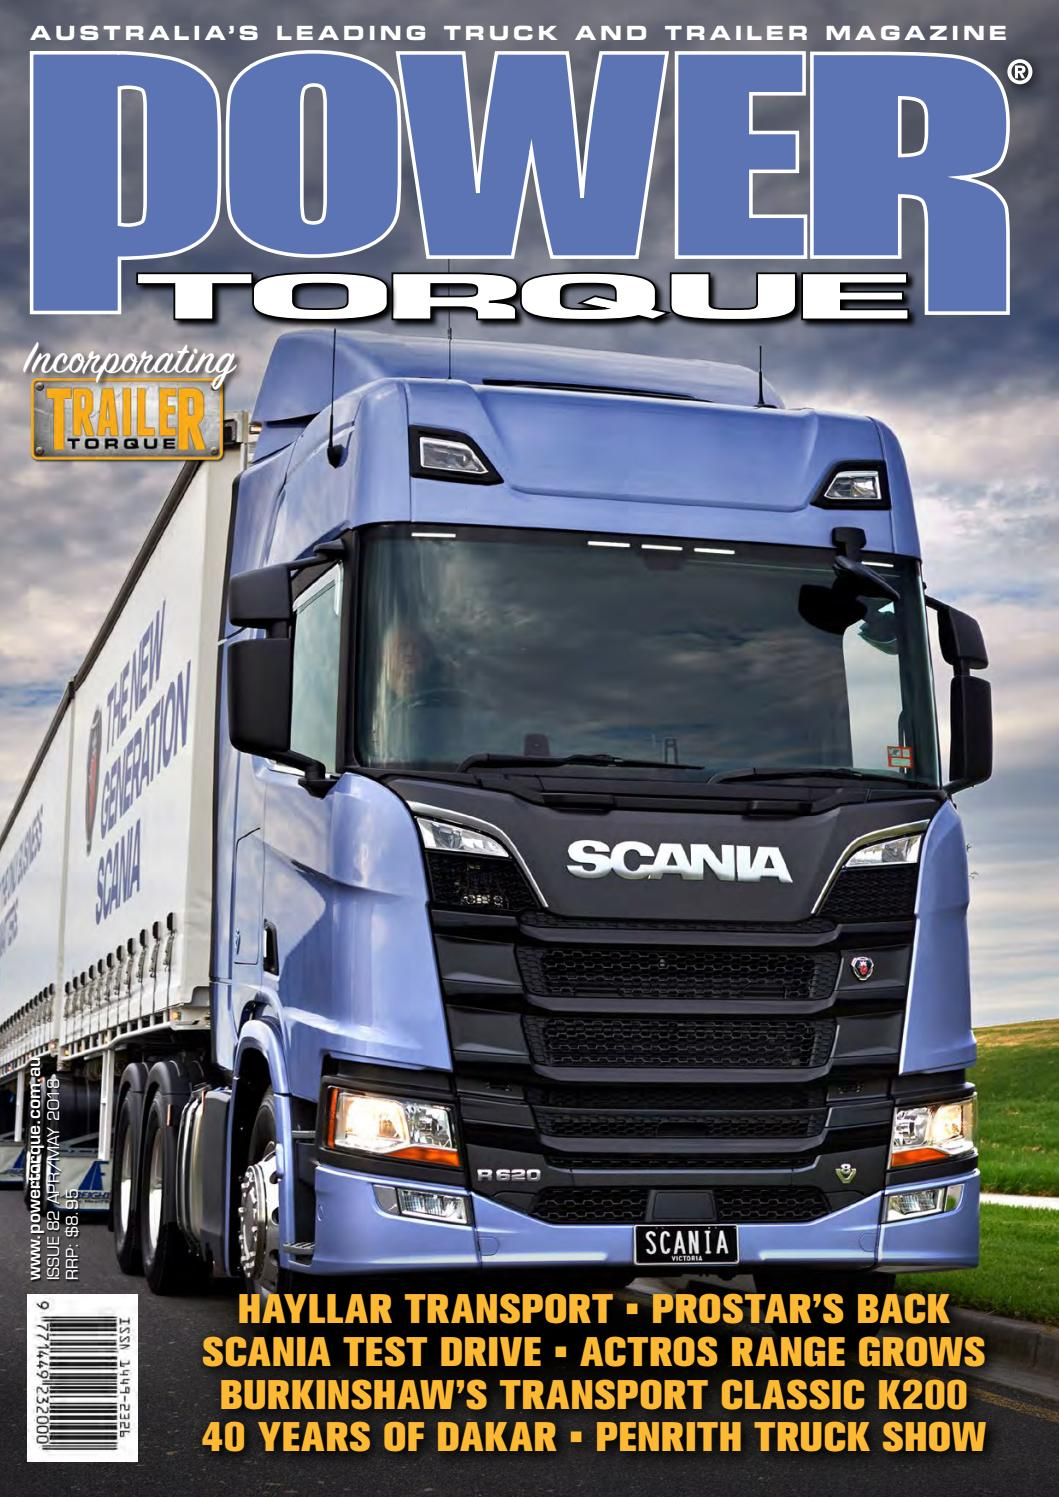 POWERTORQUE MAGAZINE ISSUE #83 APRIL/MAY 2018 by Motoring